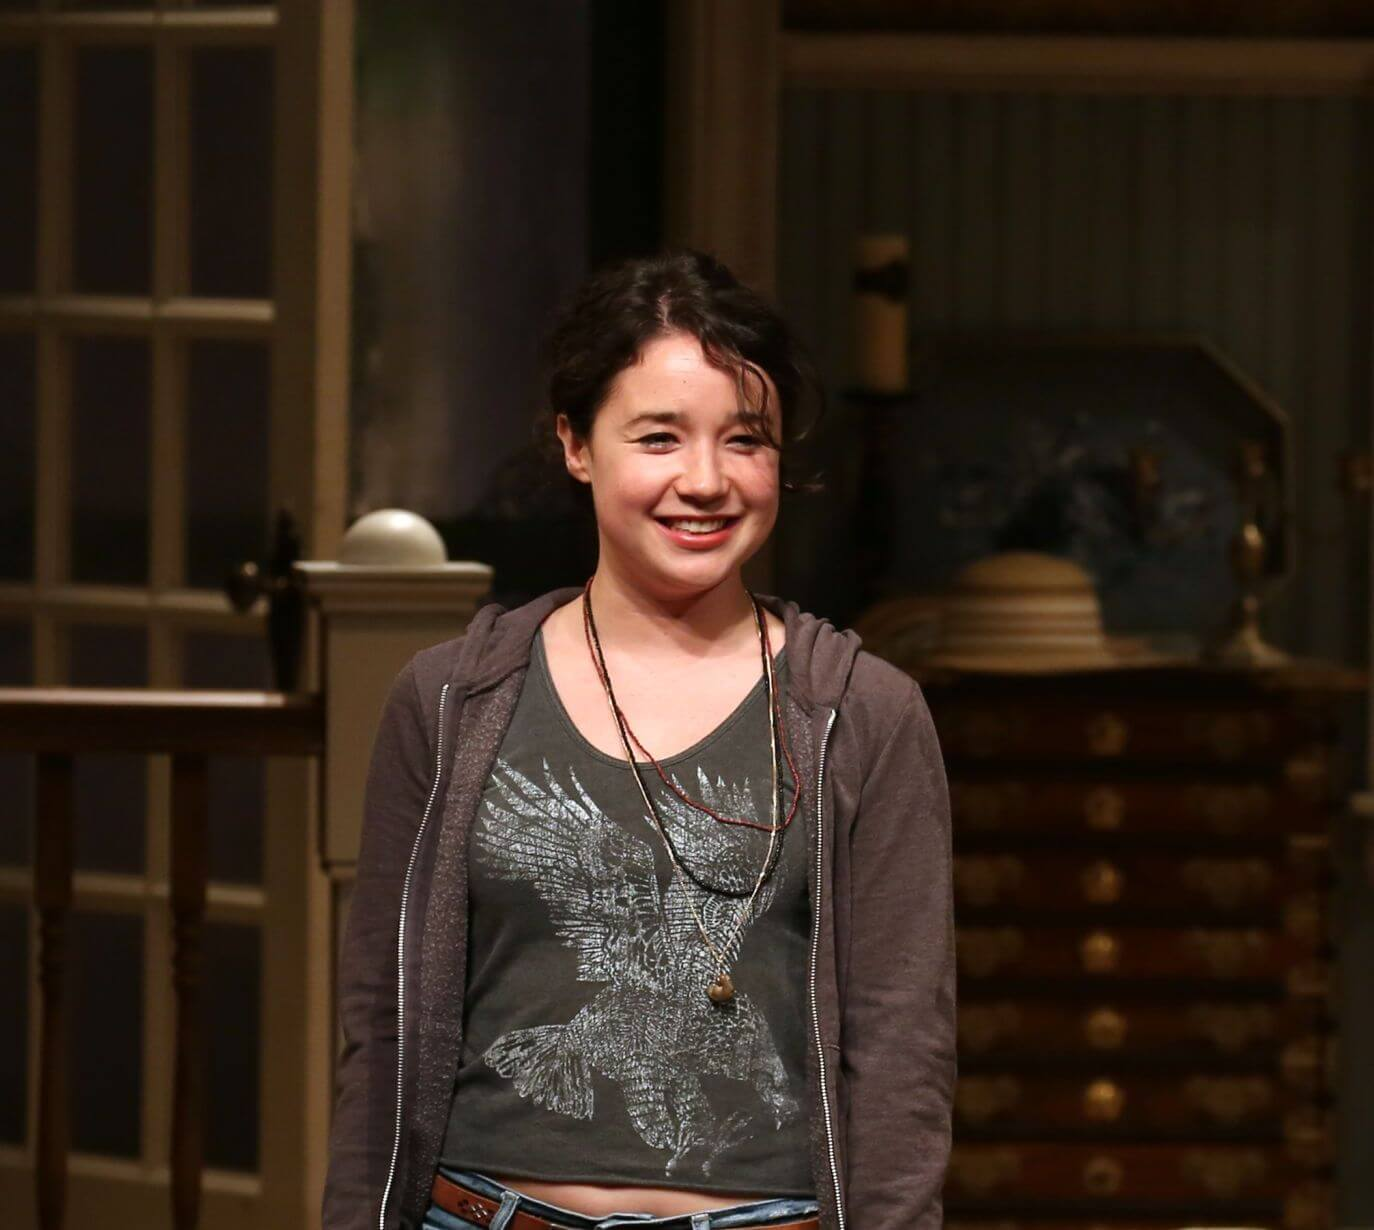 Sarah Steele hot pictures